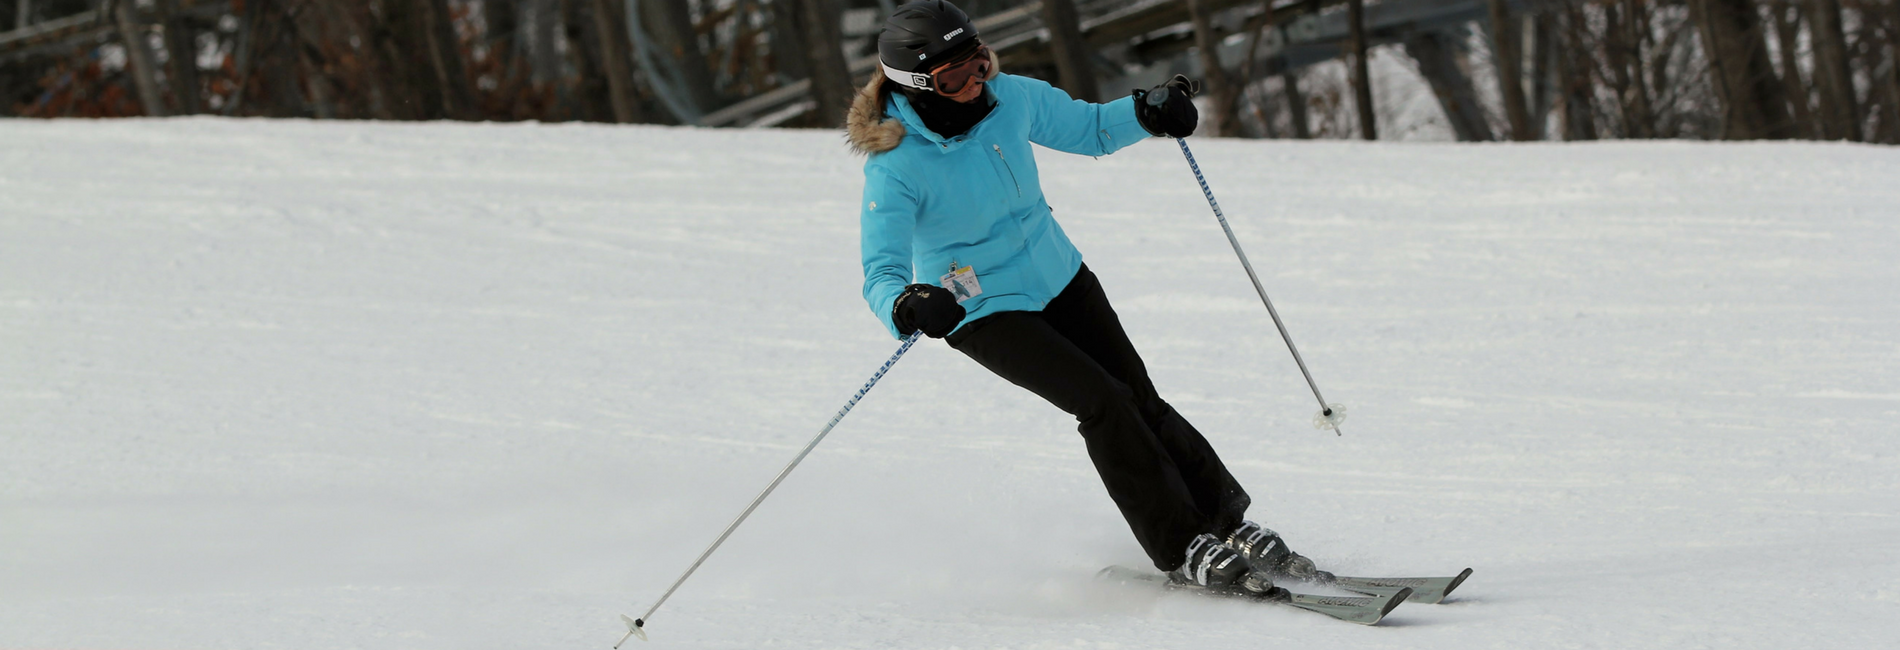 Standard swscd   downhill skiing  3   activity banner image    1900x650